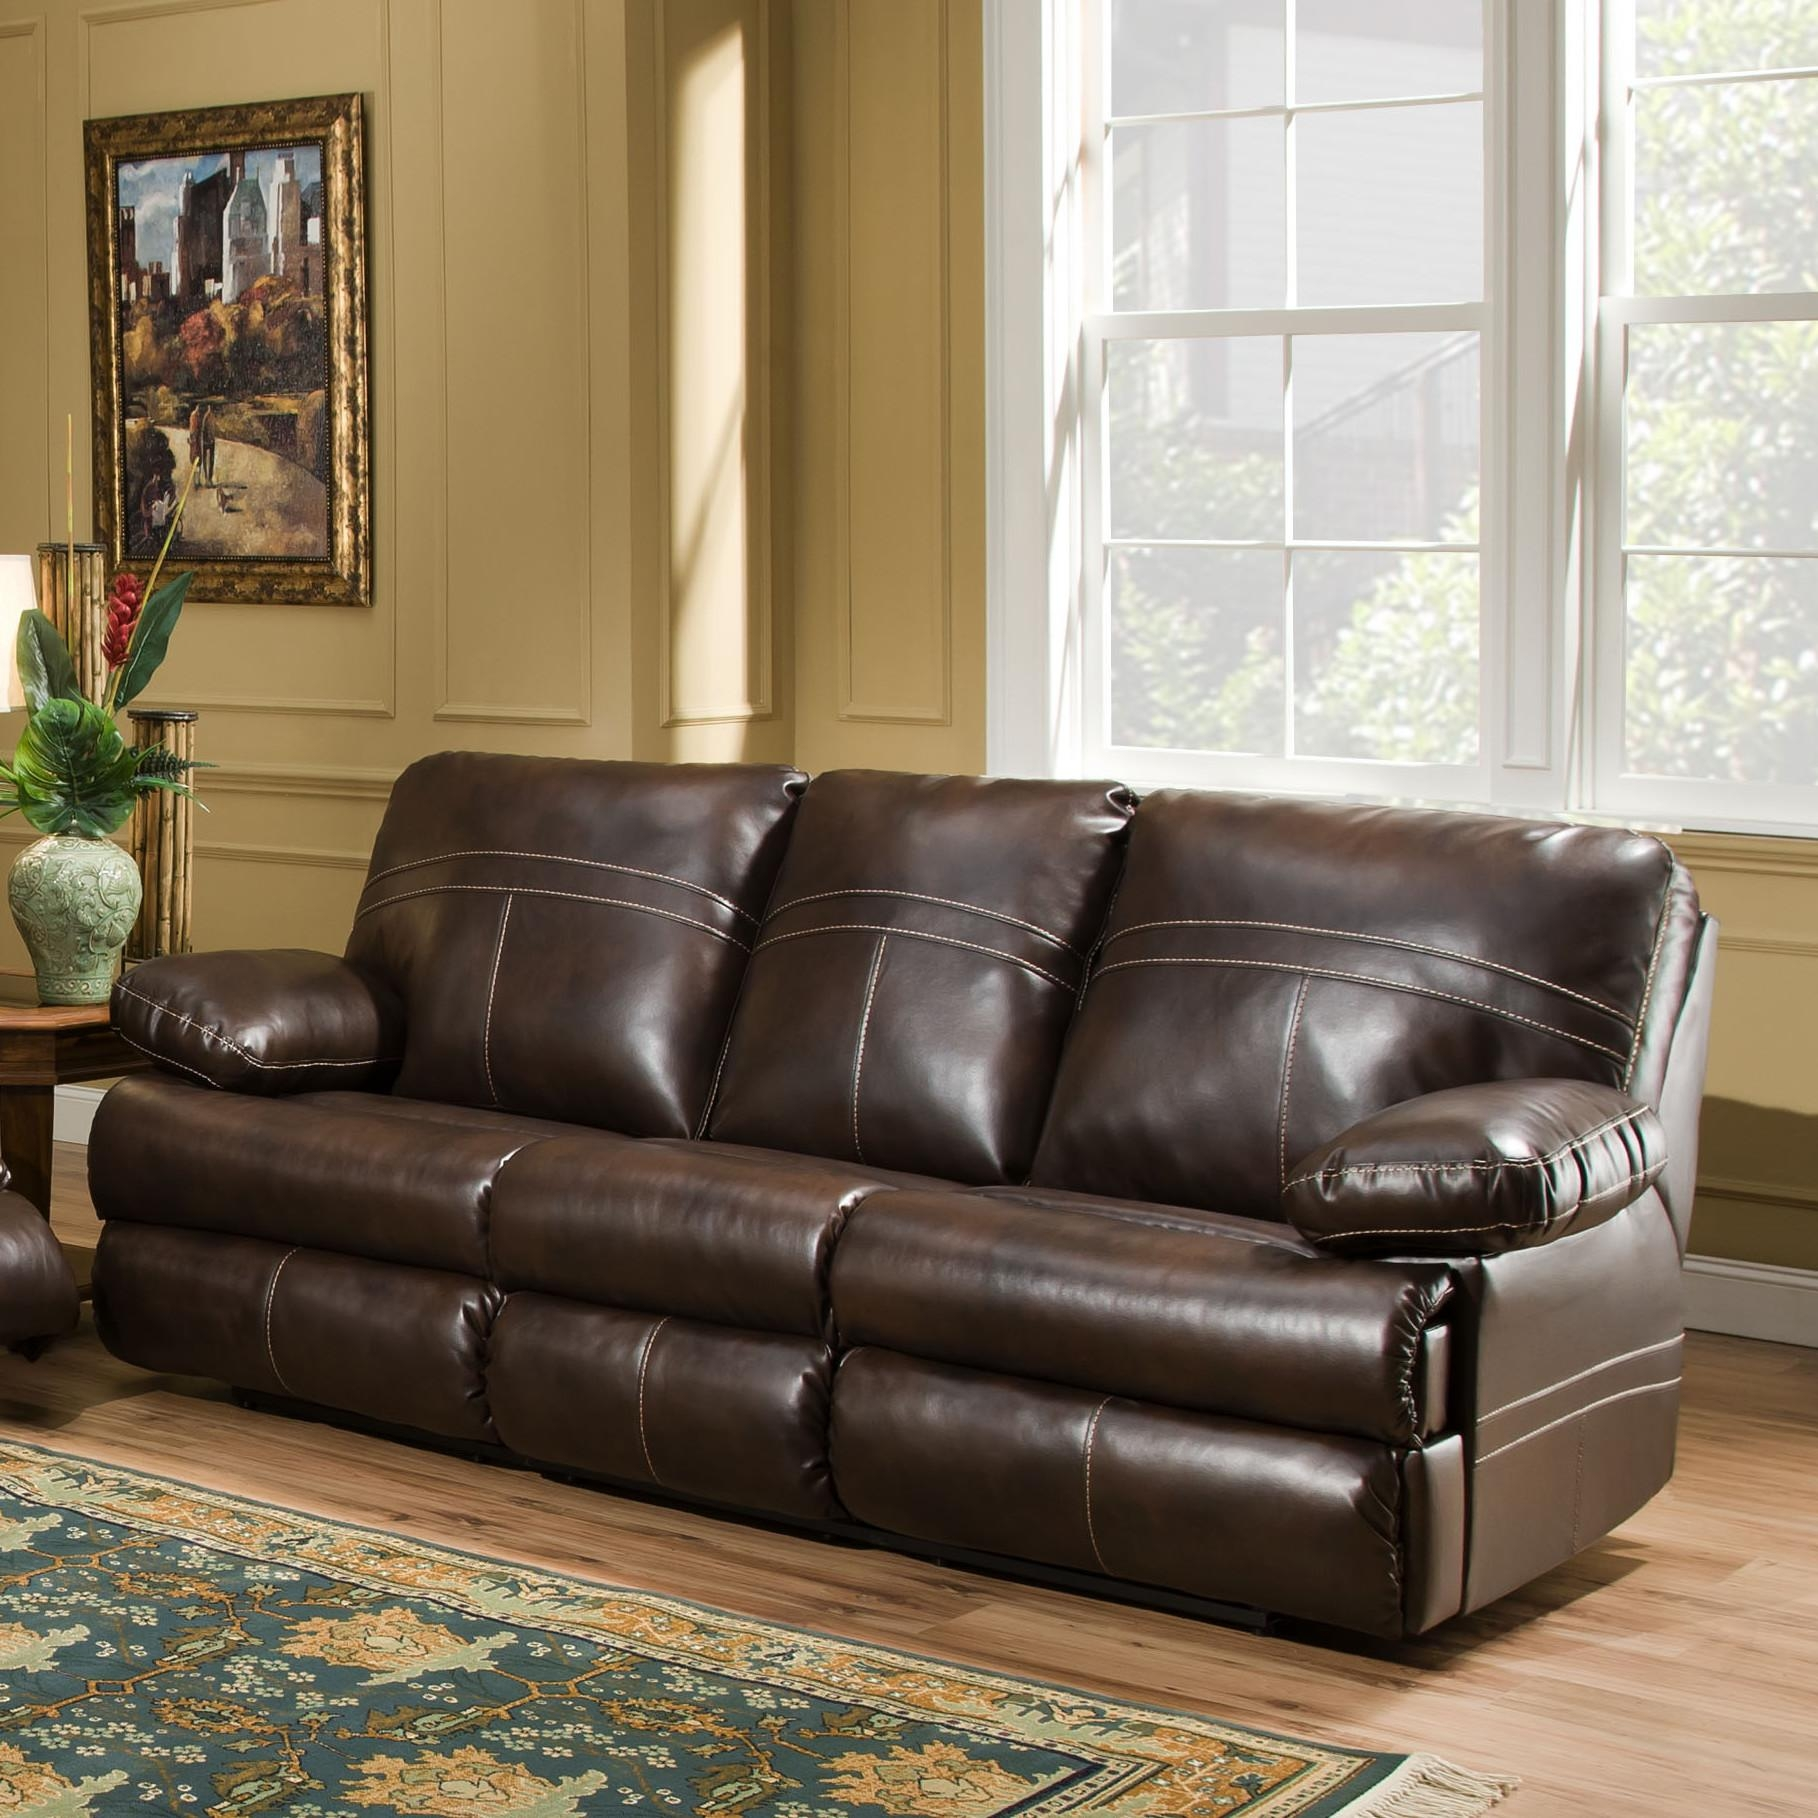 Furniture: Simmons Sectional For Comfortable Seating — Threestems Pertaining To Simmons Leather Sofas And Loveseats (Image 2 of 20)